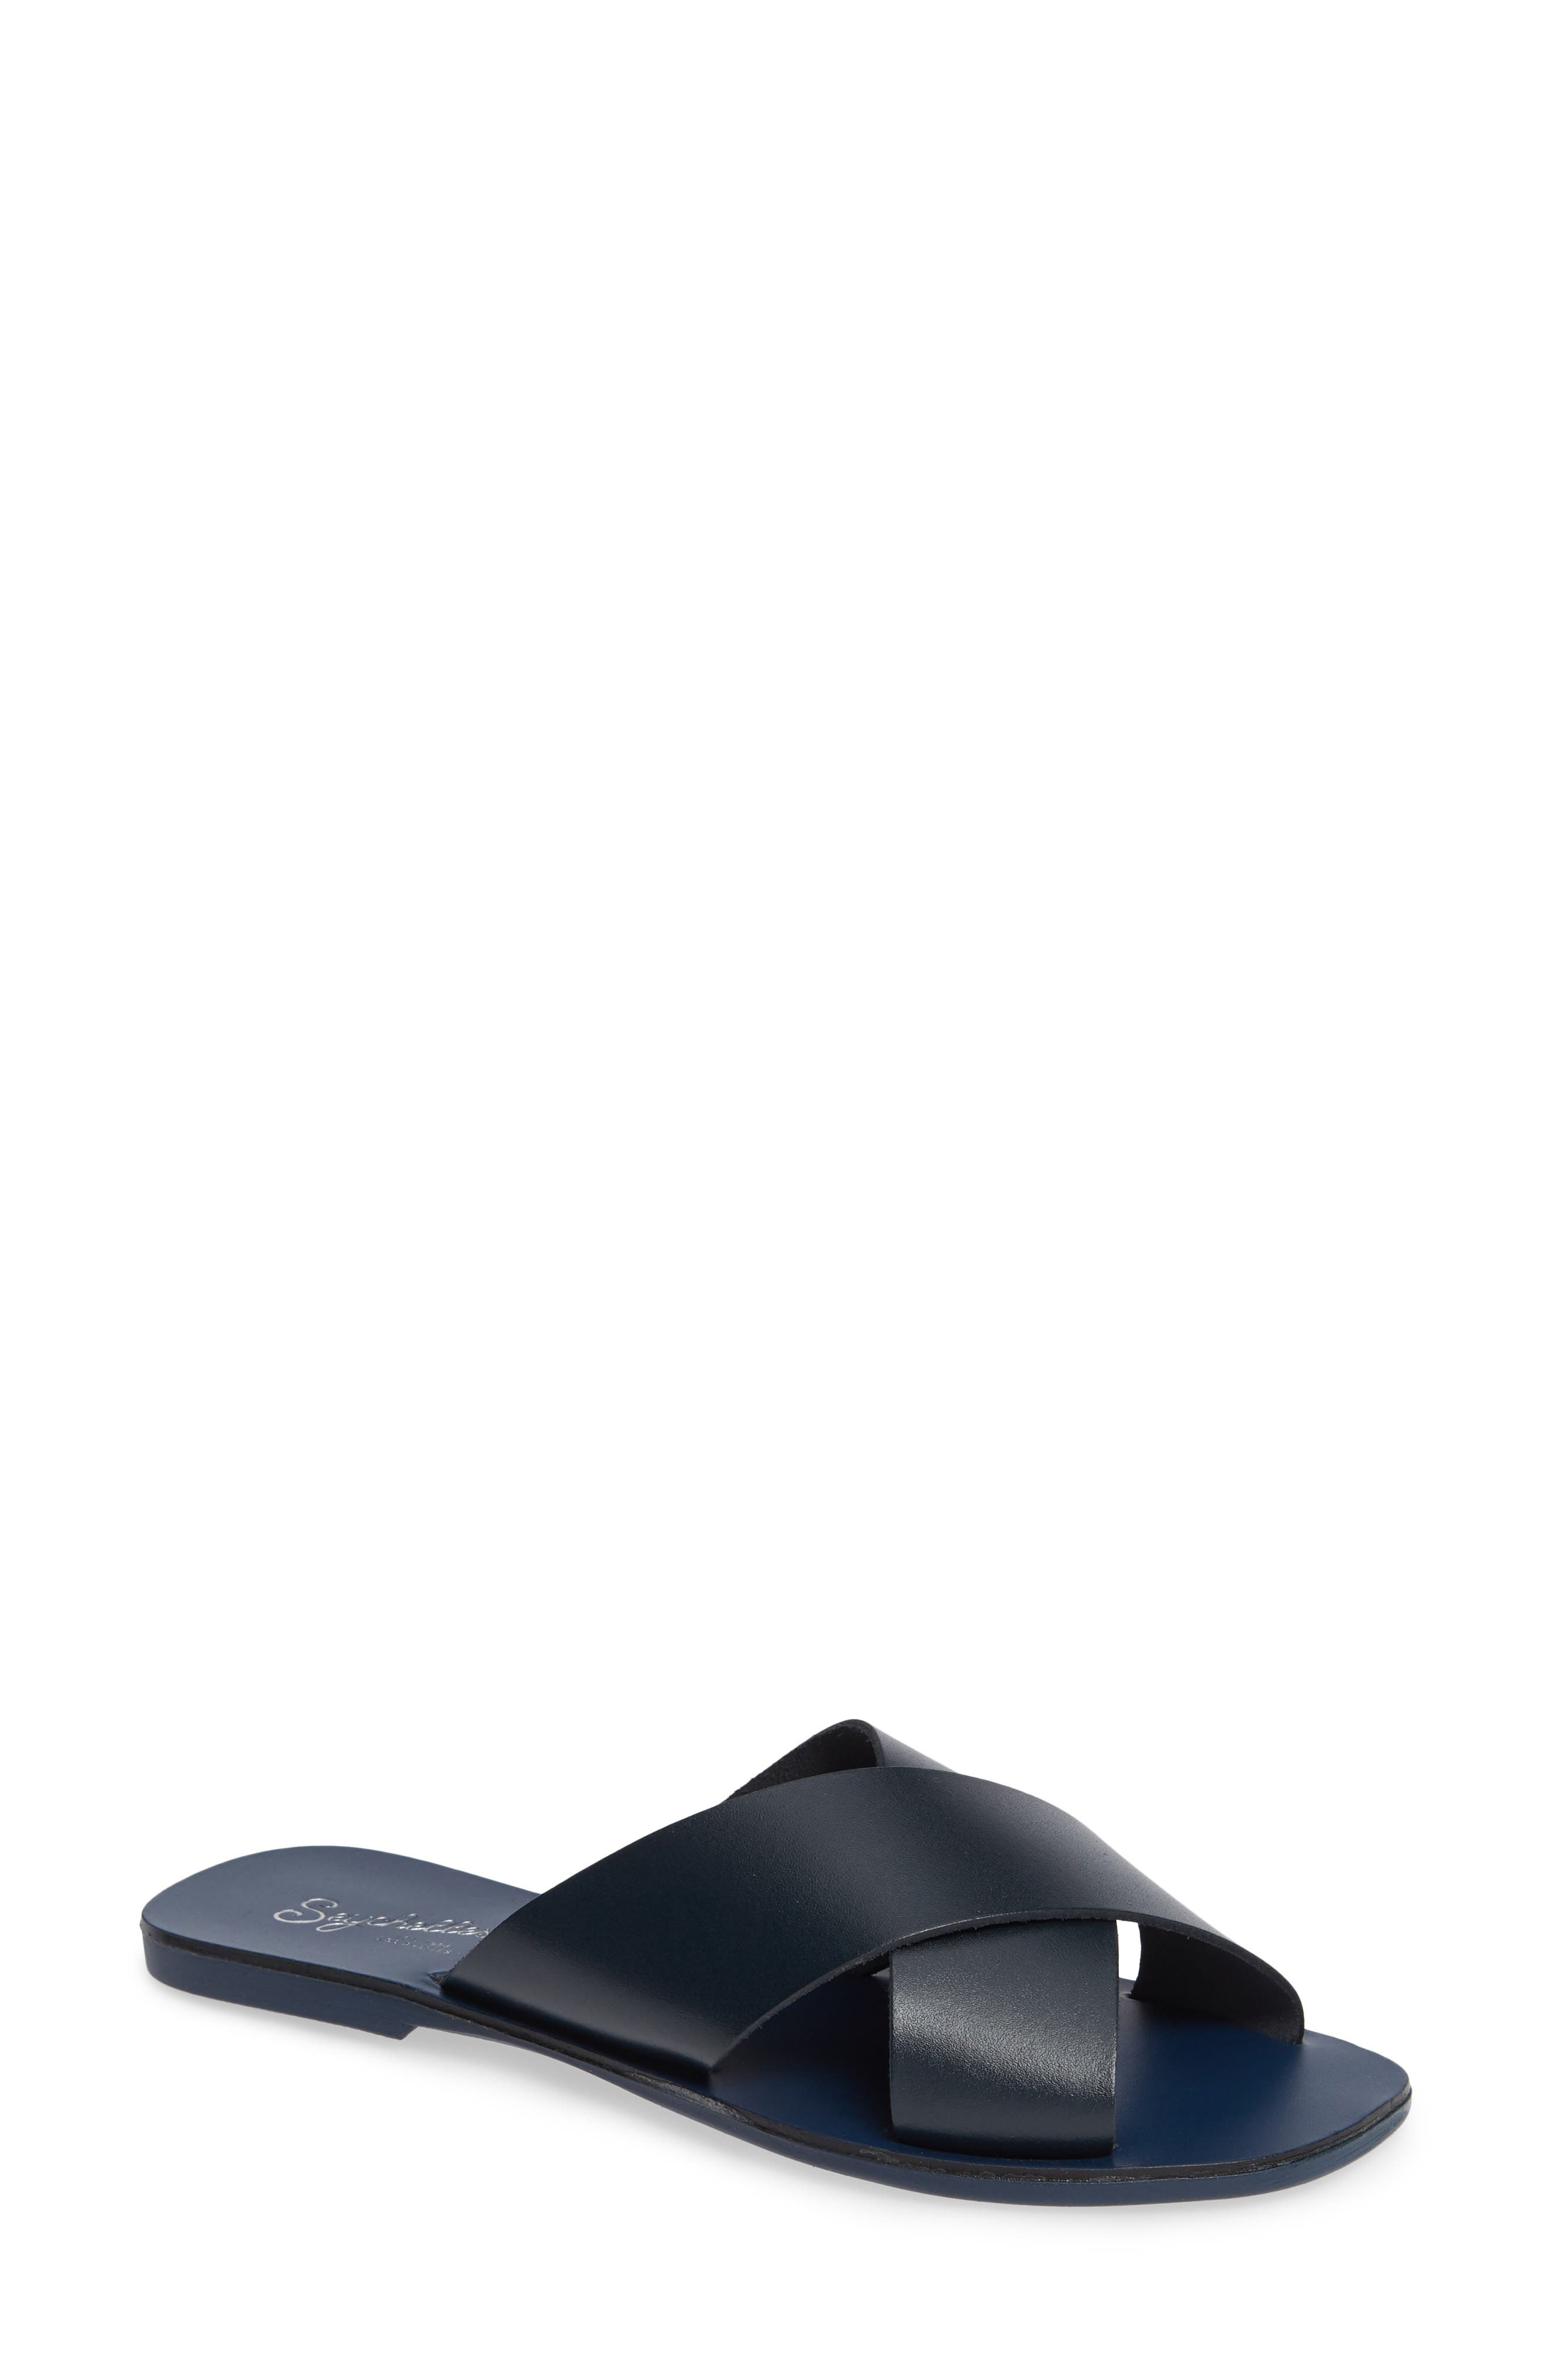 Total Relaxation Slide Sandal,                         Main,                         color, NAVY LEATHER